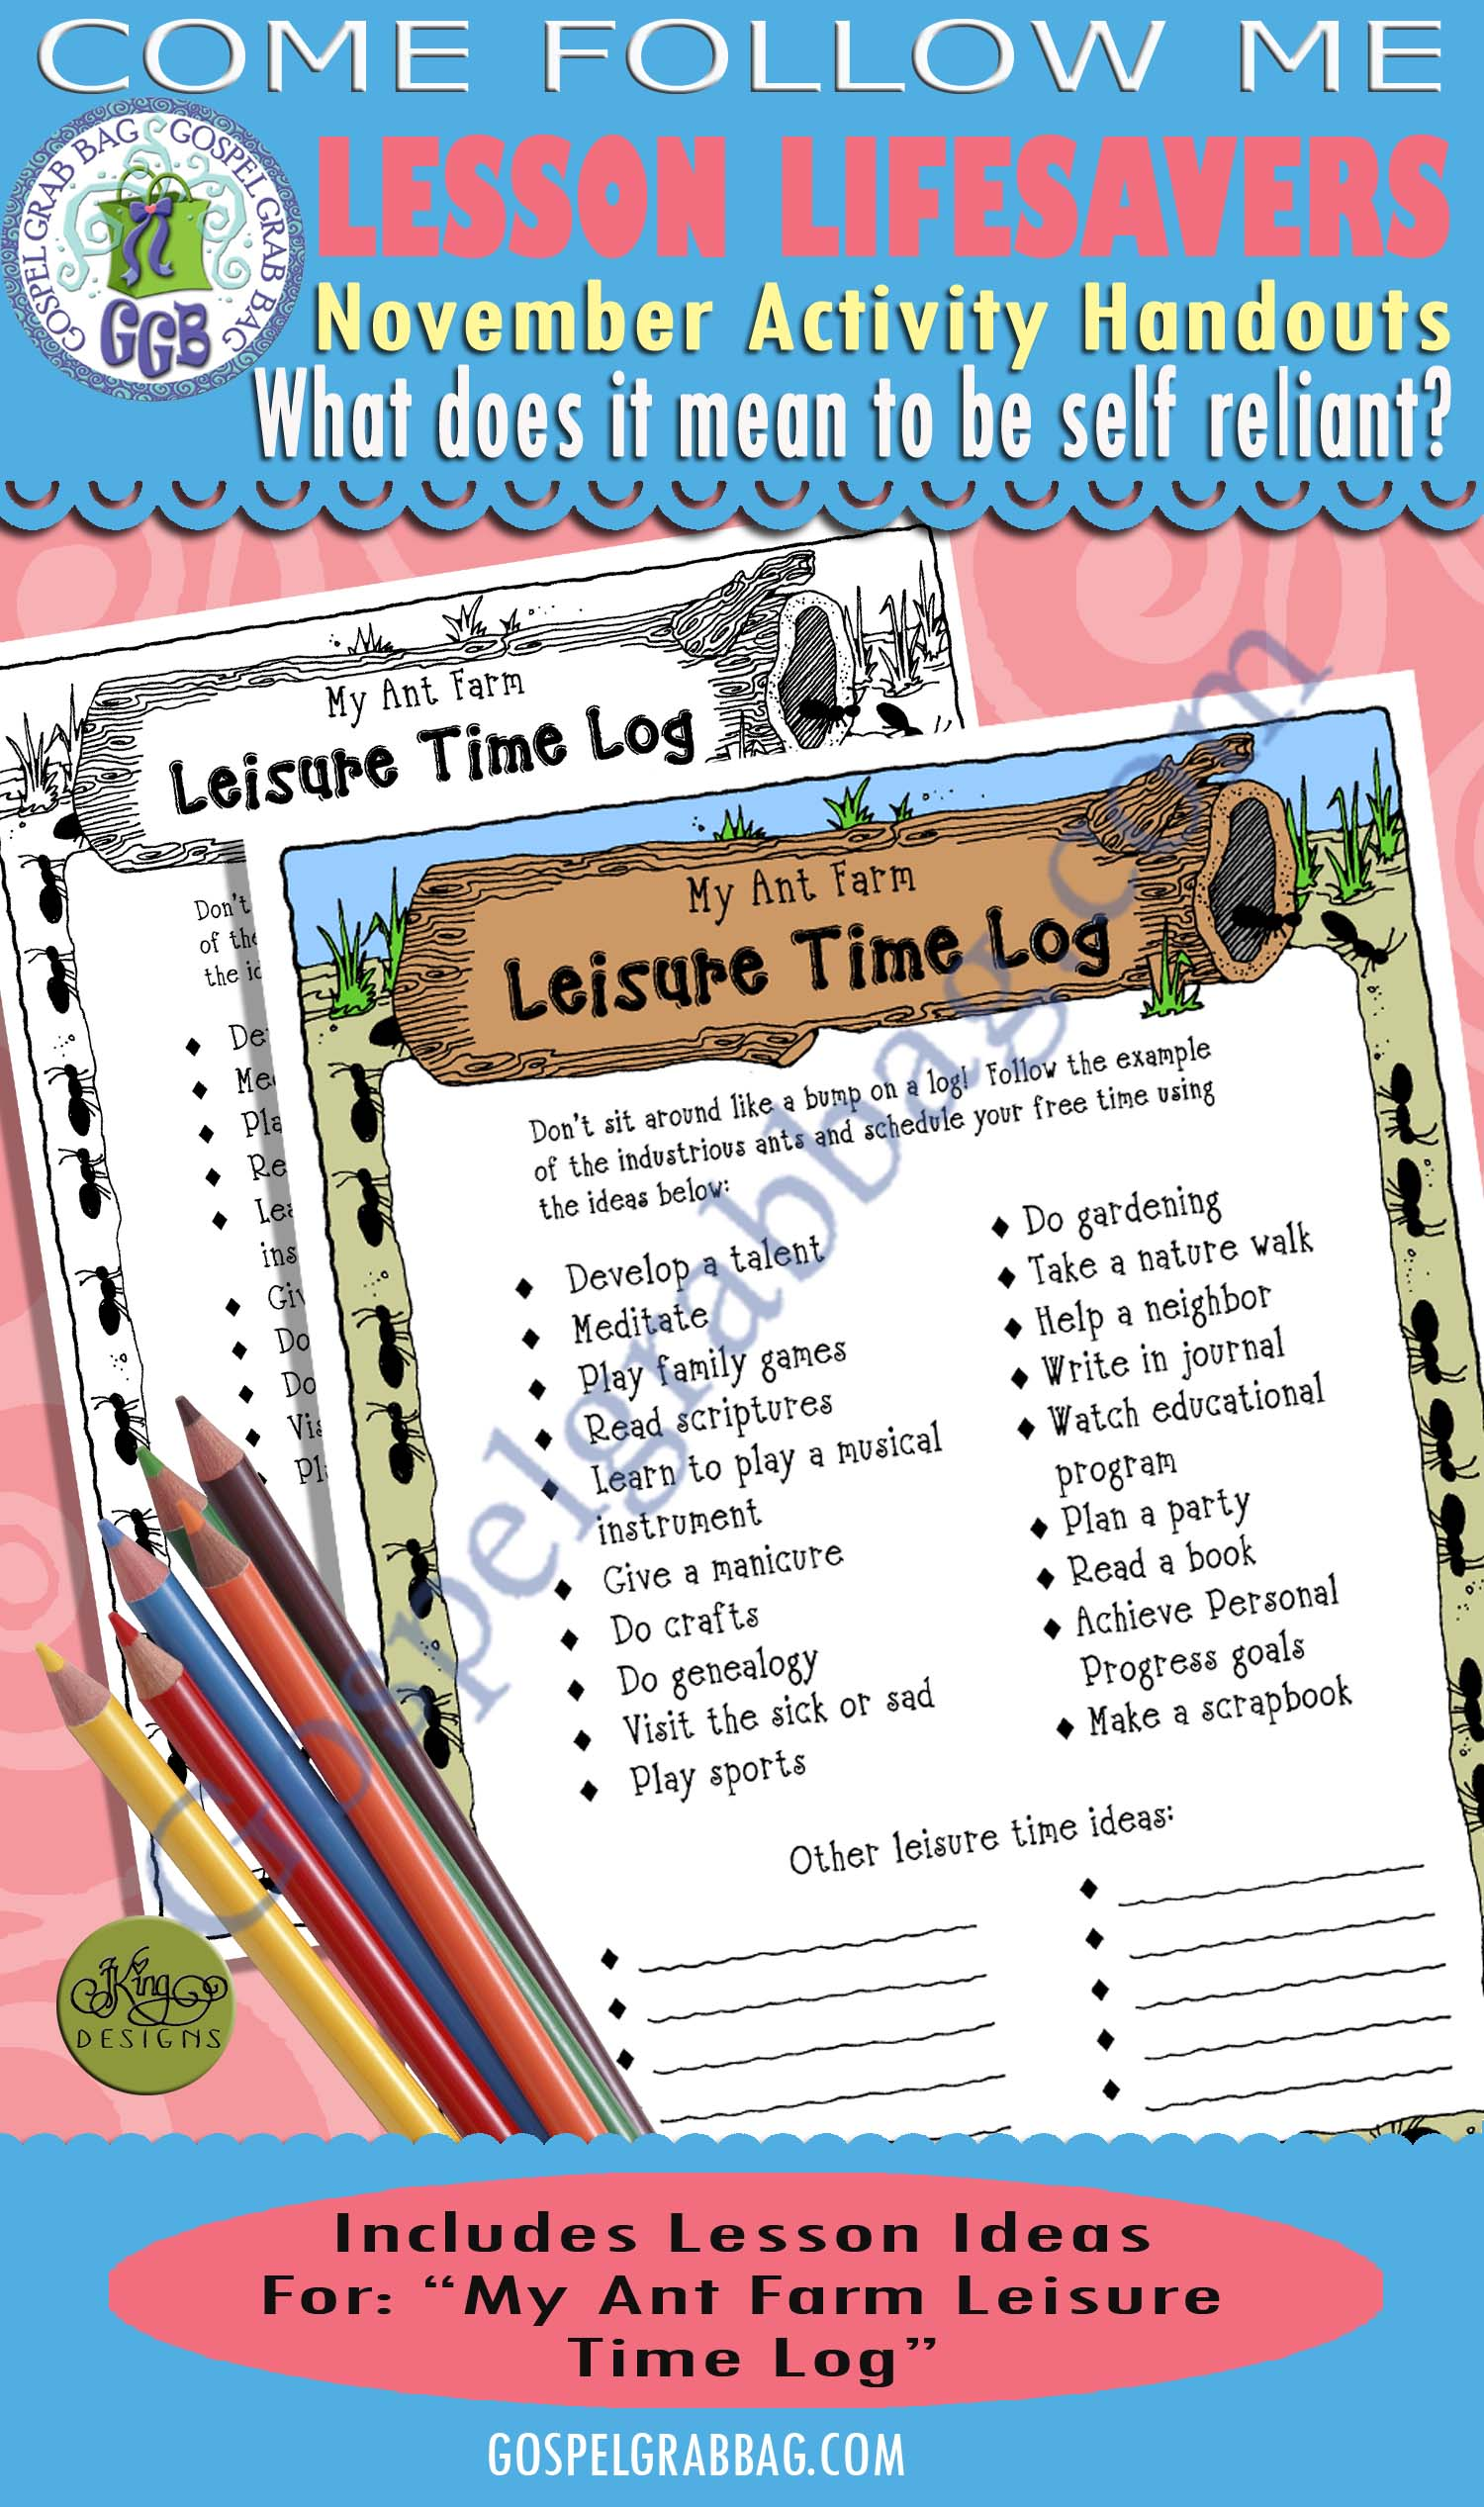 "$1.75 November Lesson 1 - Come Follow Me ""What does it mean to be self-reliant?"" ACTIVITY: My Ant Farm Leisure Time Log"